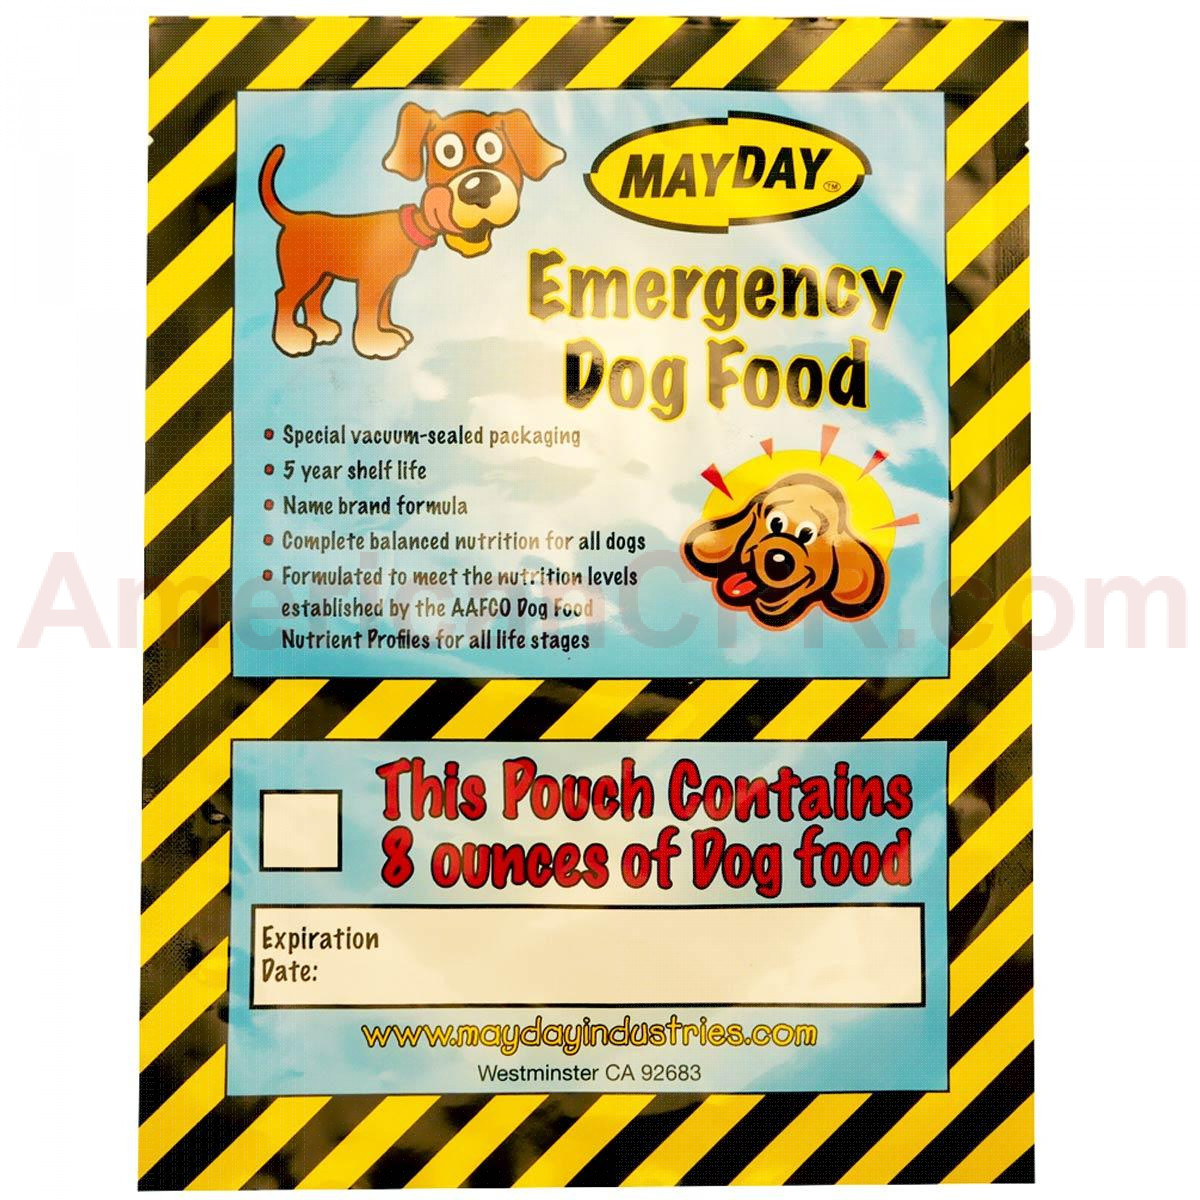 Emergency Dog Food - Mayday